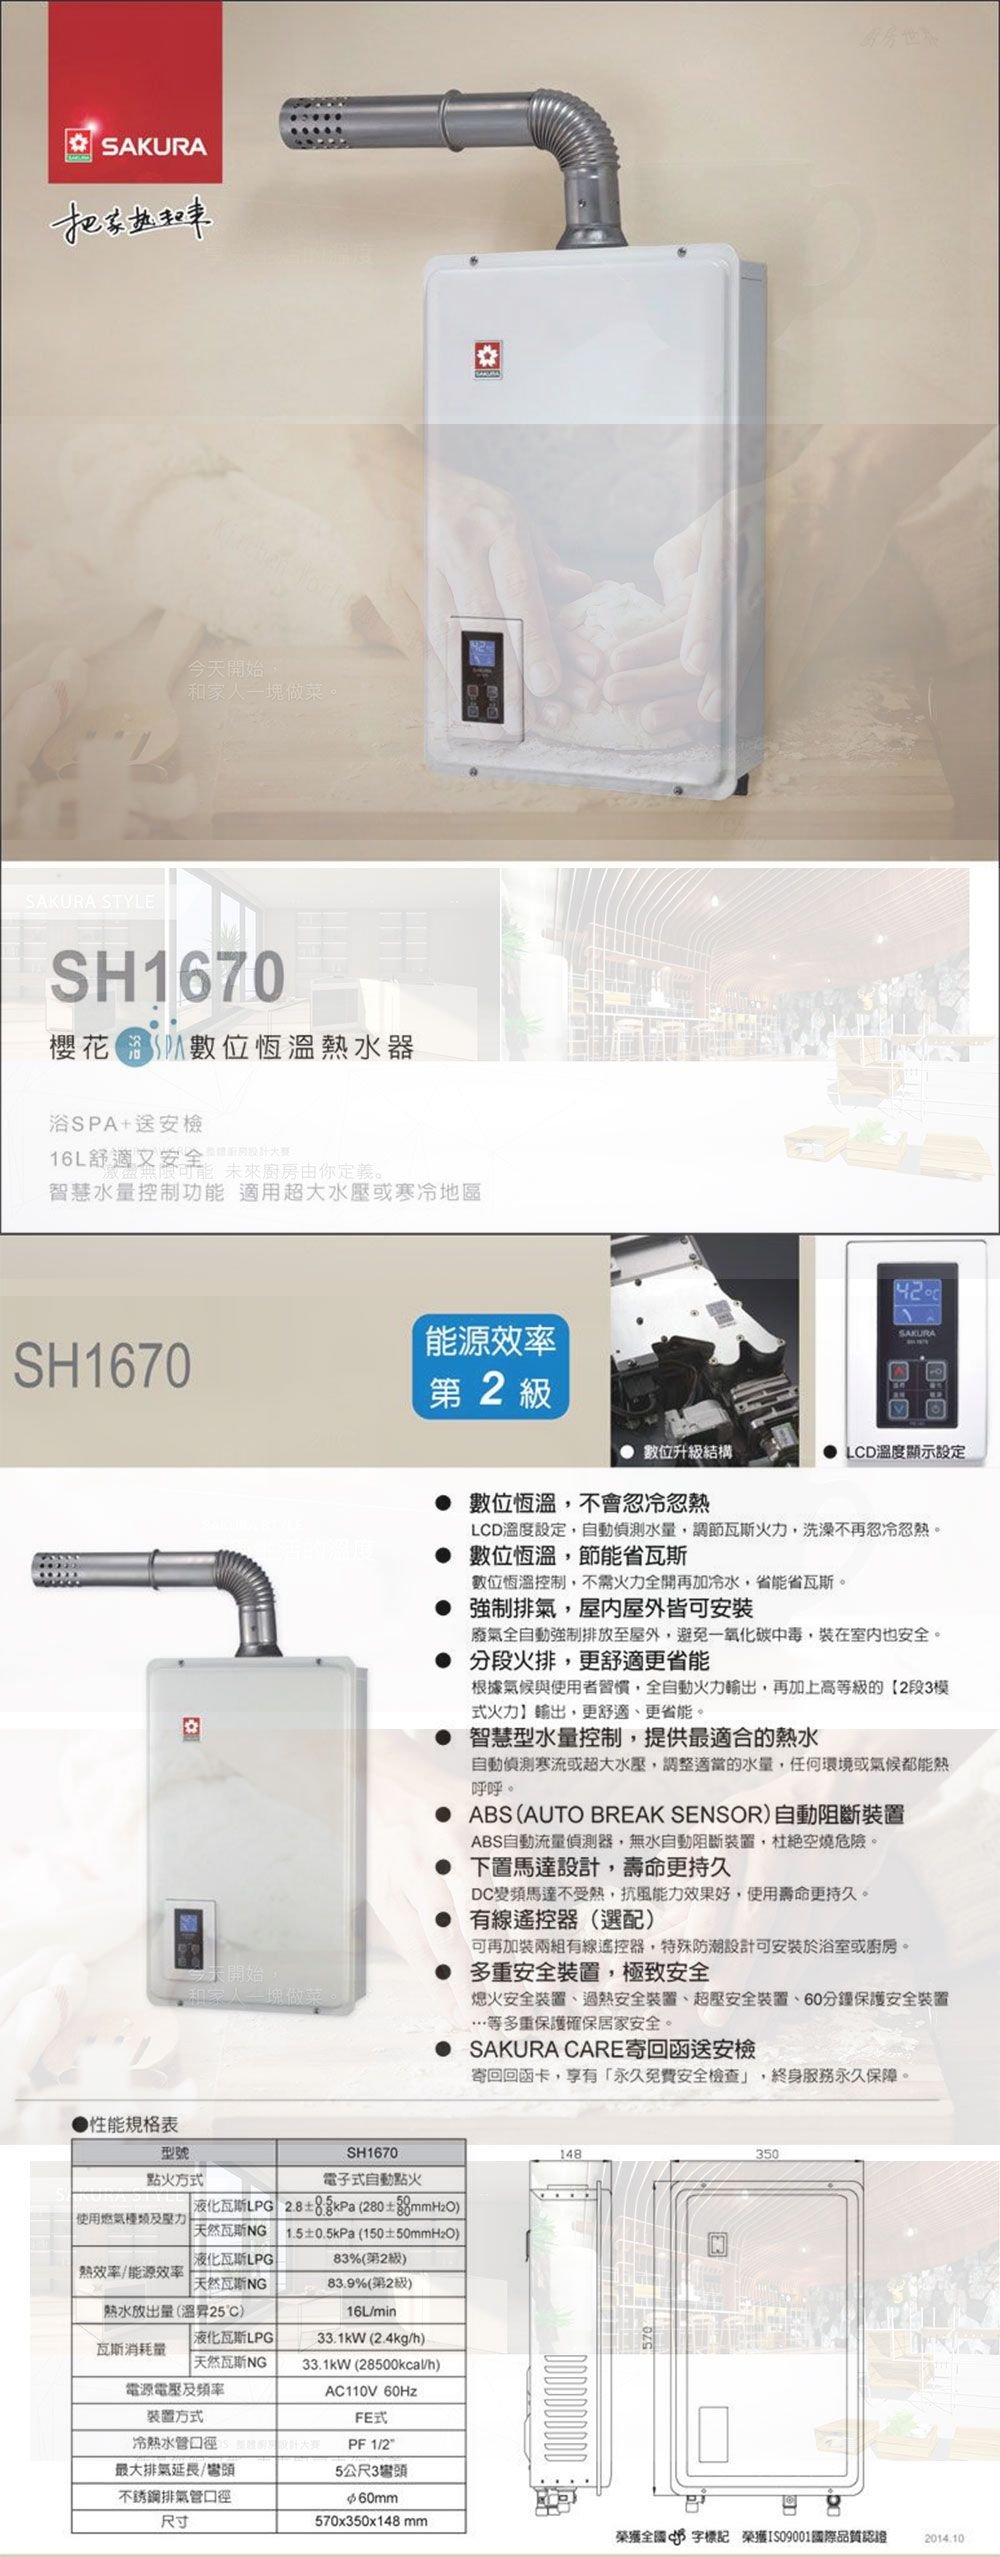 PK/goods/SAKURA/Water Heater/SH1670F-DM-1.jpg